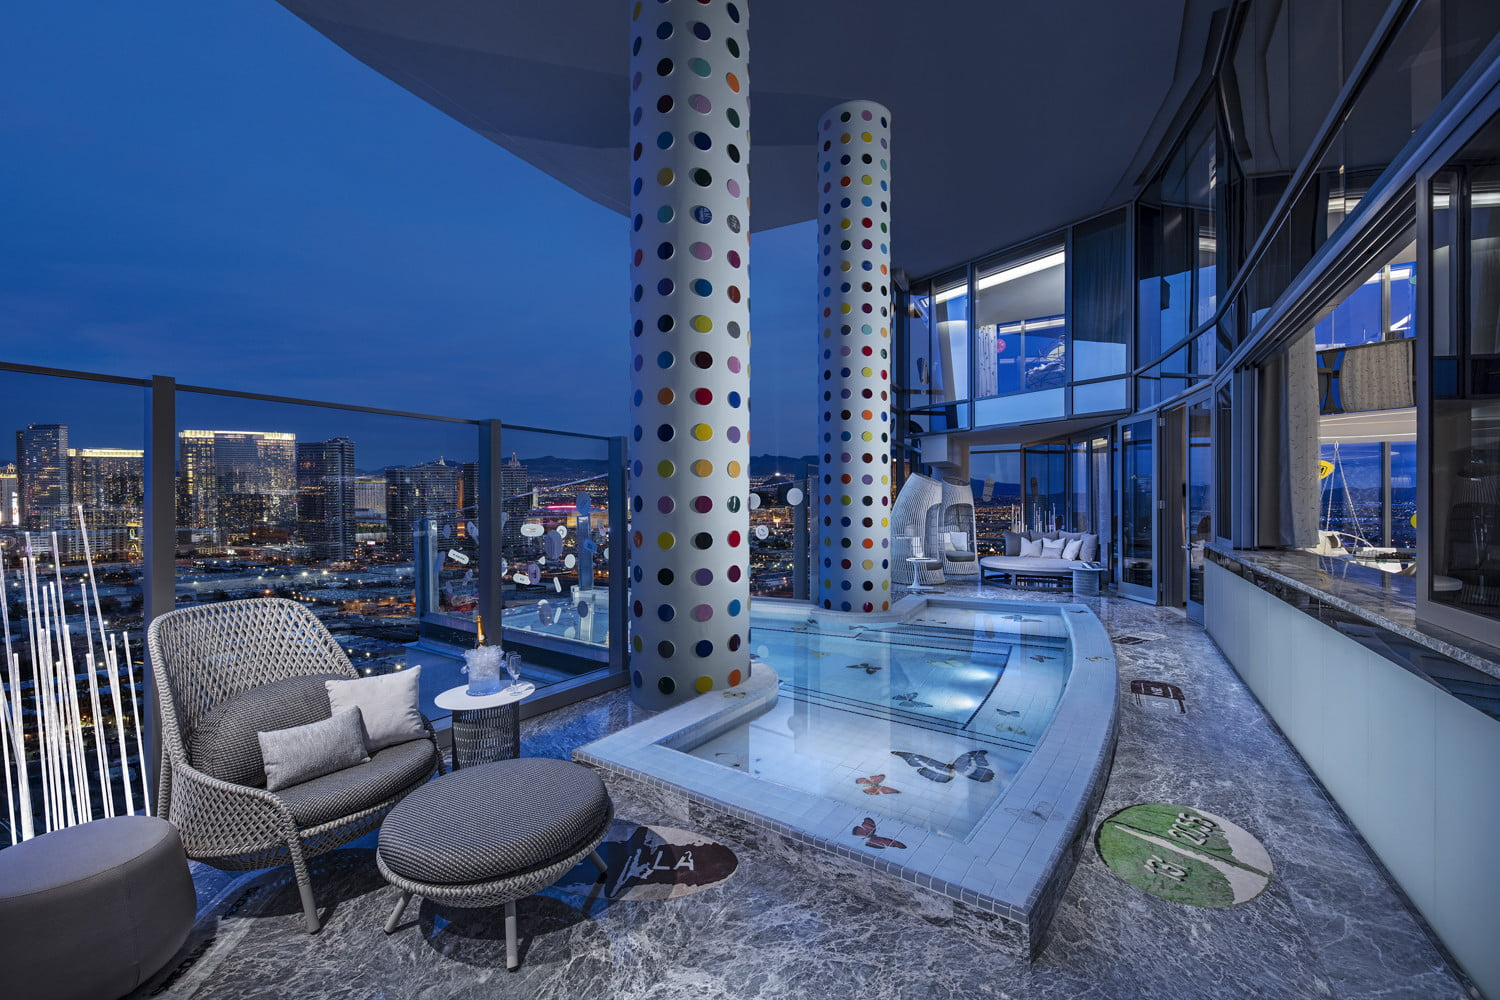 this 100000 a night vegas hotel suite is the worlds most expensive empathy designed by damien hirst balcony  pool